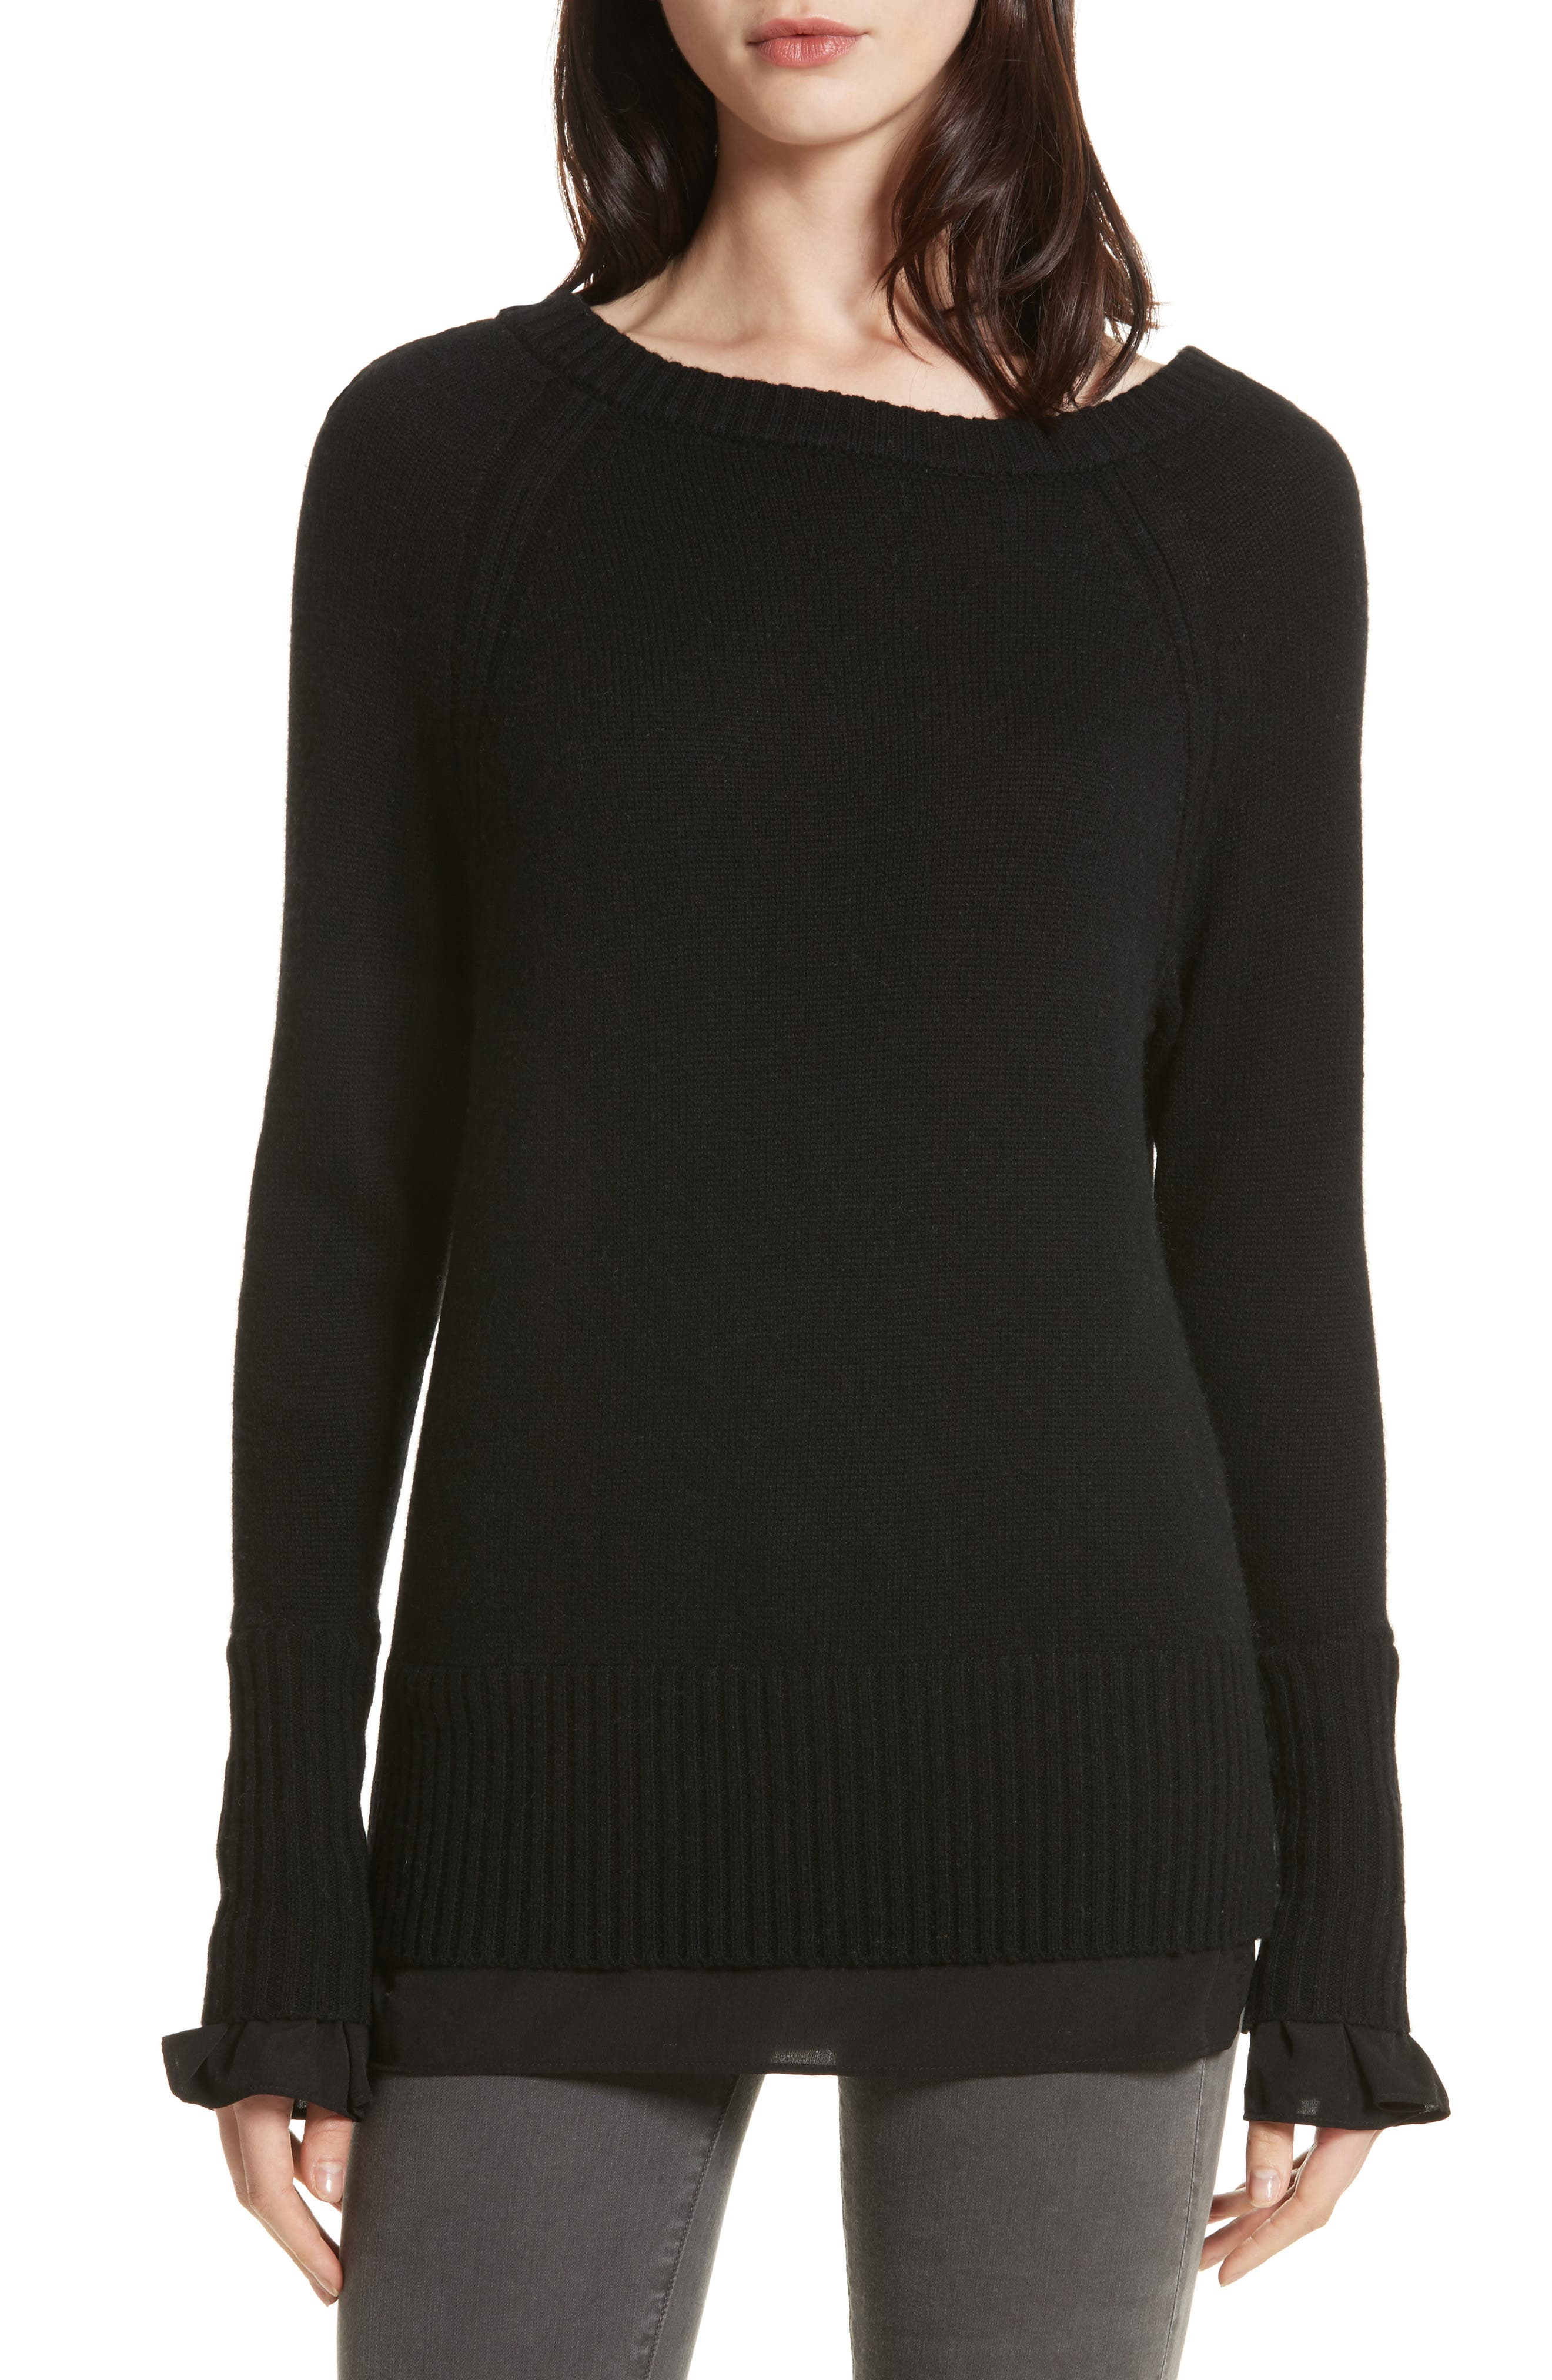 Flores Layered Off Shoulder Sweater,                         Main,                         color, Black Onyx W/ Black Layer